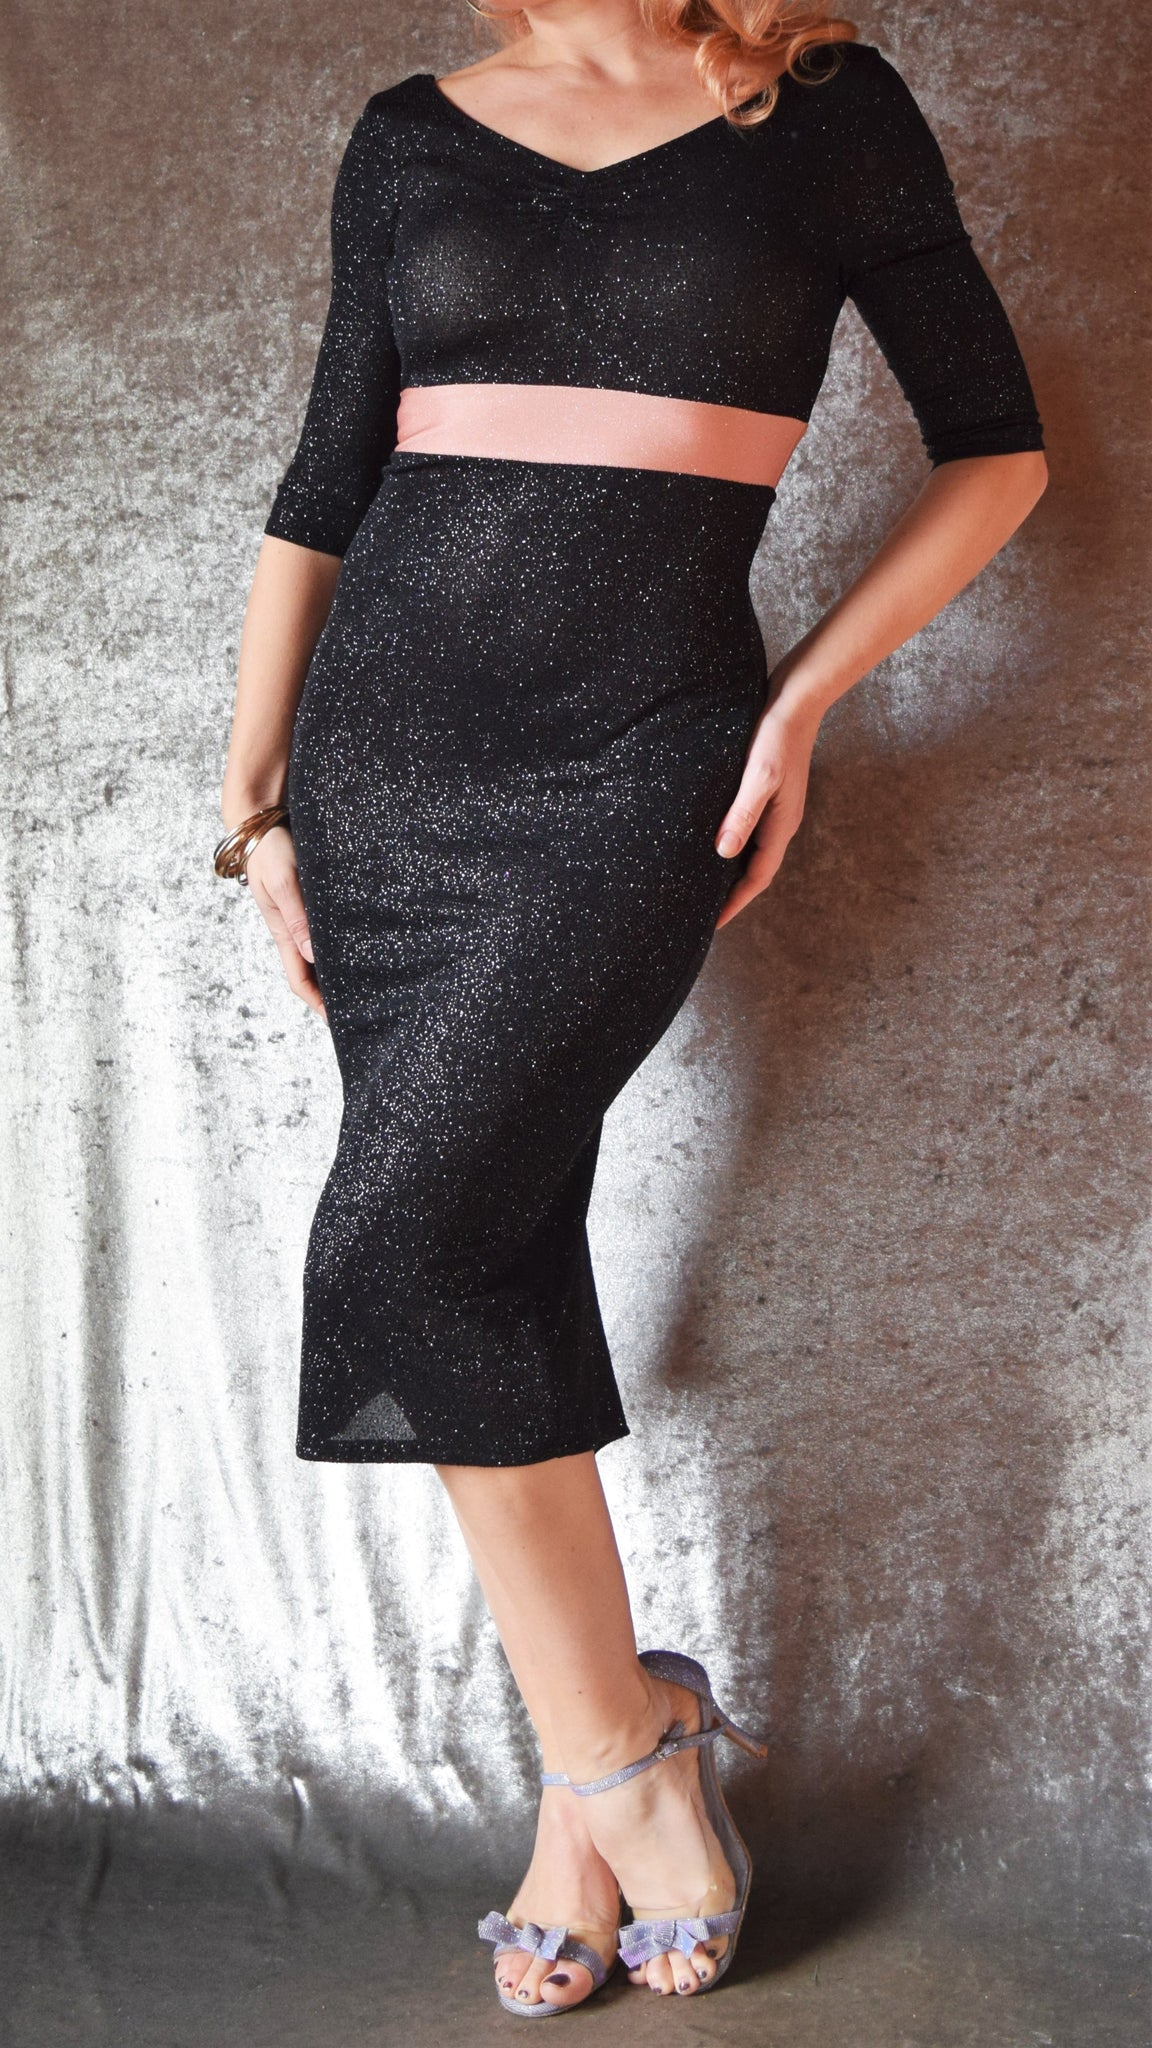 Black Glitter Slinky 3/4 Sleeve Wiggle Dress with Ruched Neckline and Blush Waistband - Choose Your Size